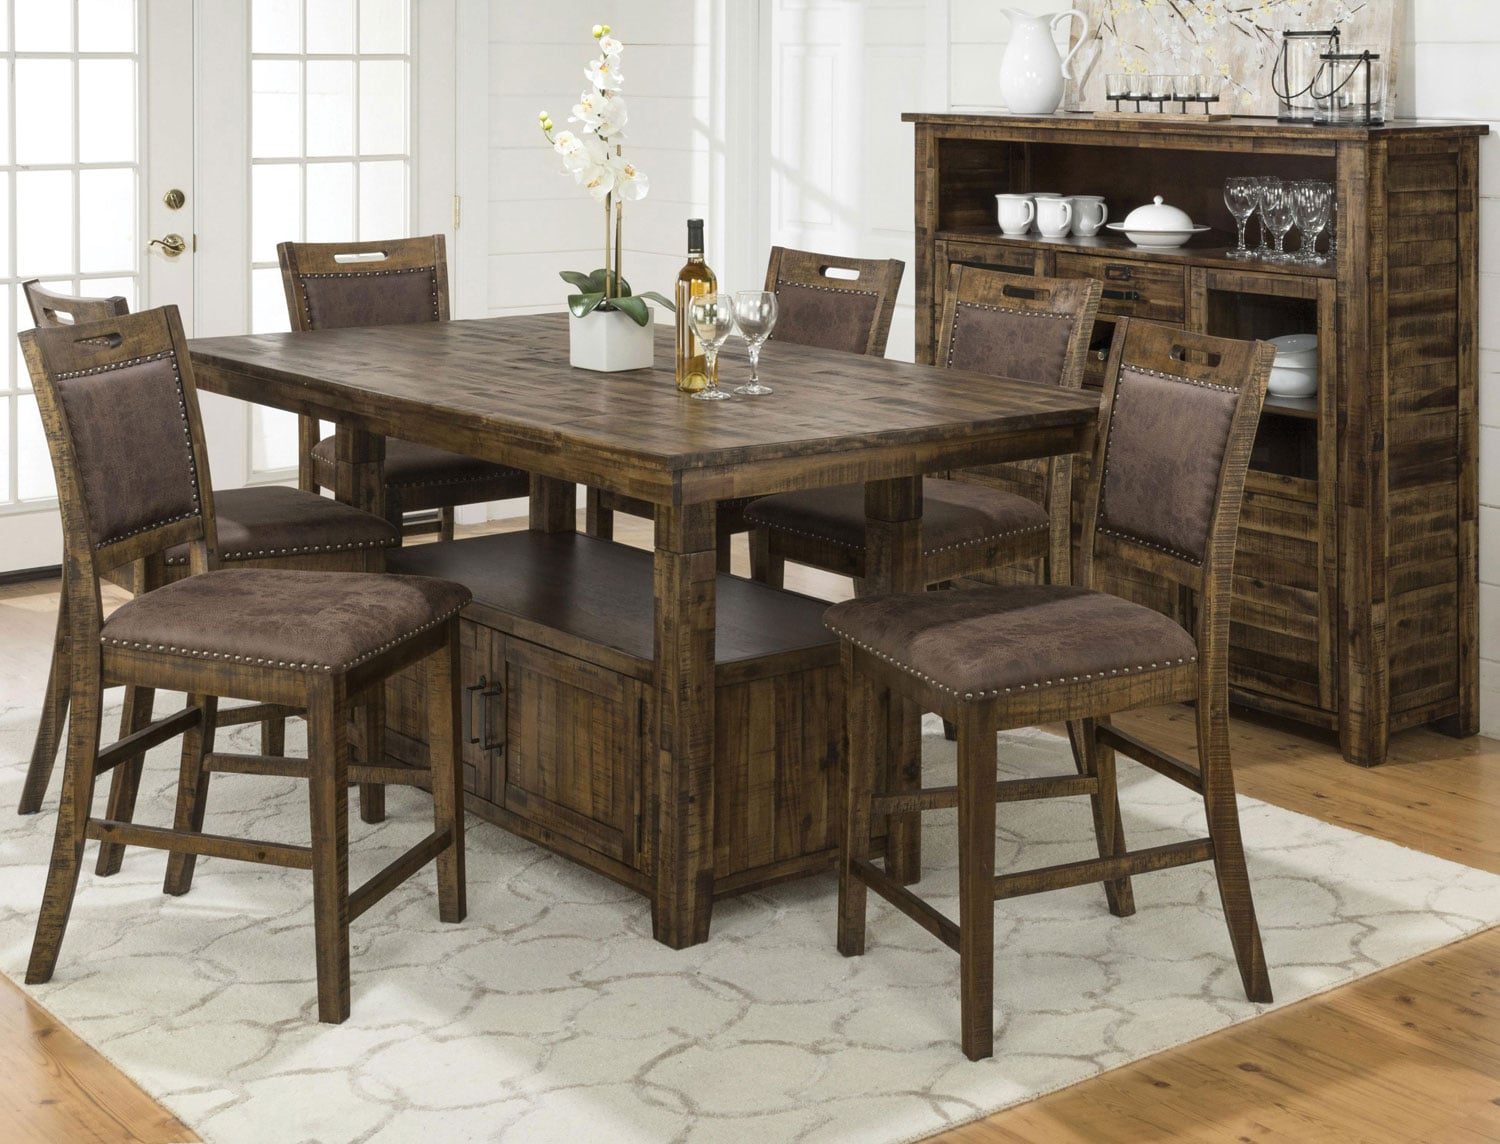 Reign Adjustable Height Table And 4 Counter Height Chairs Levin Furniture